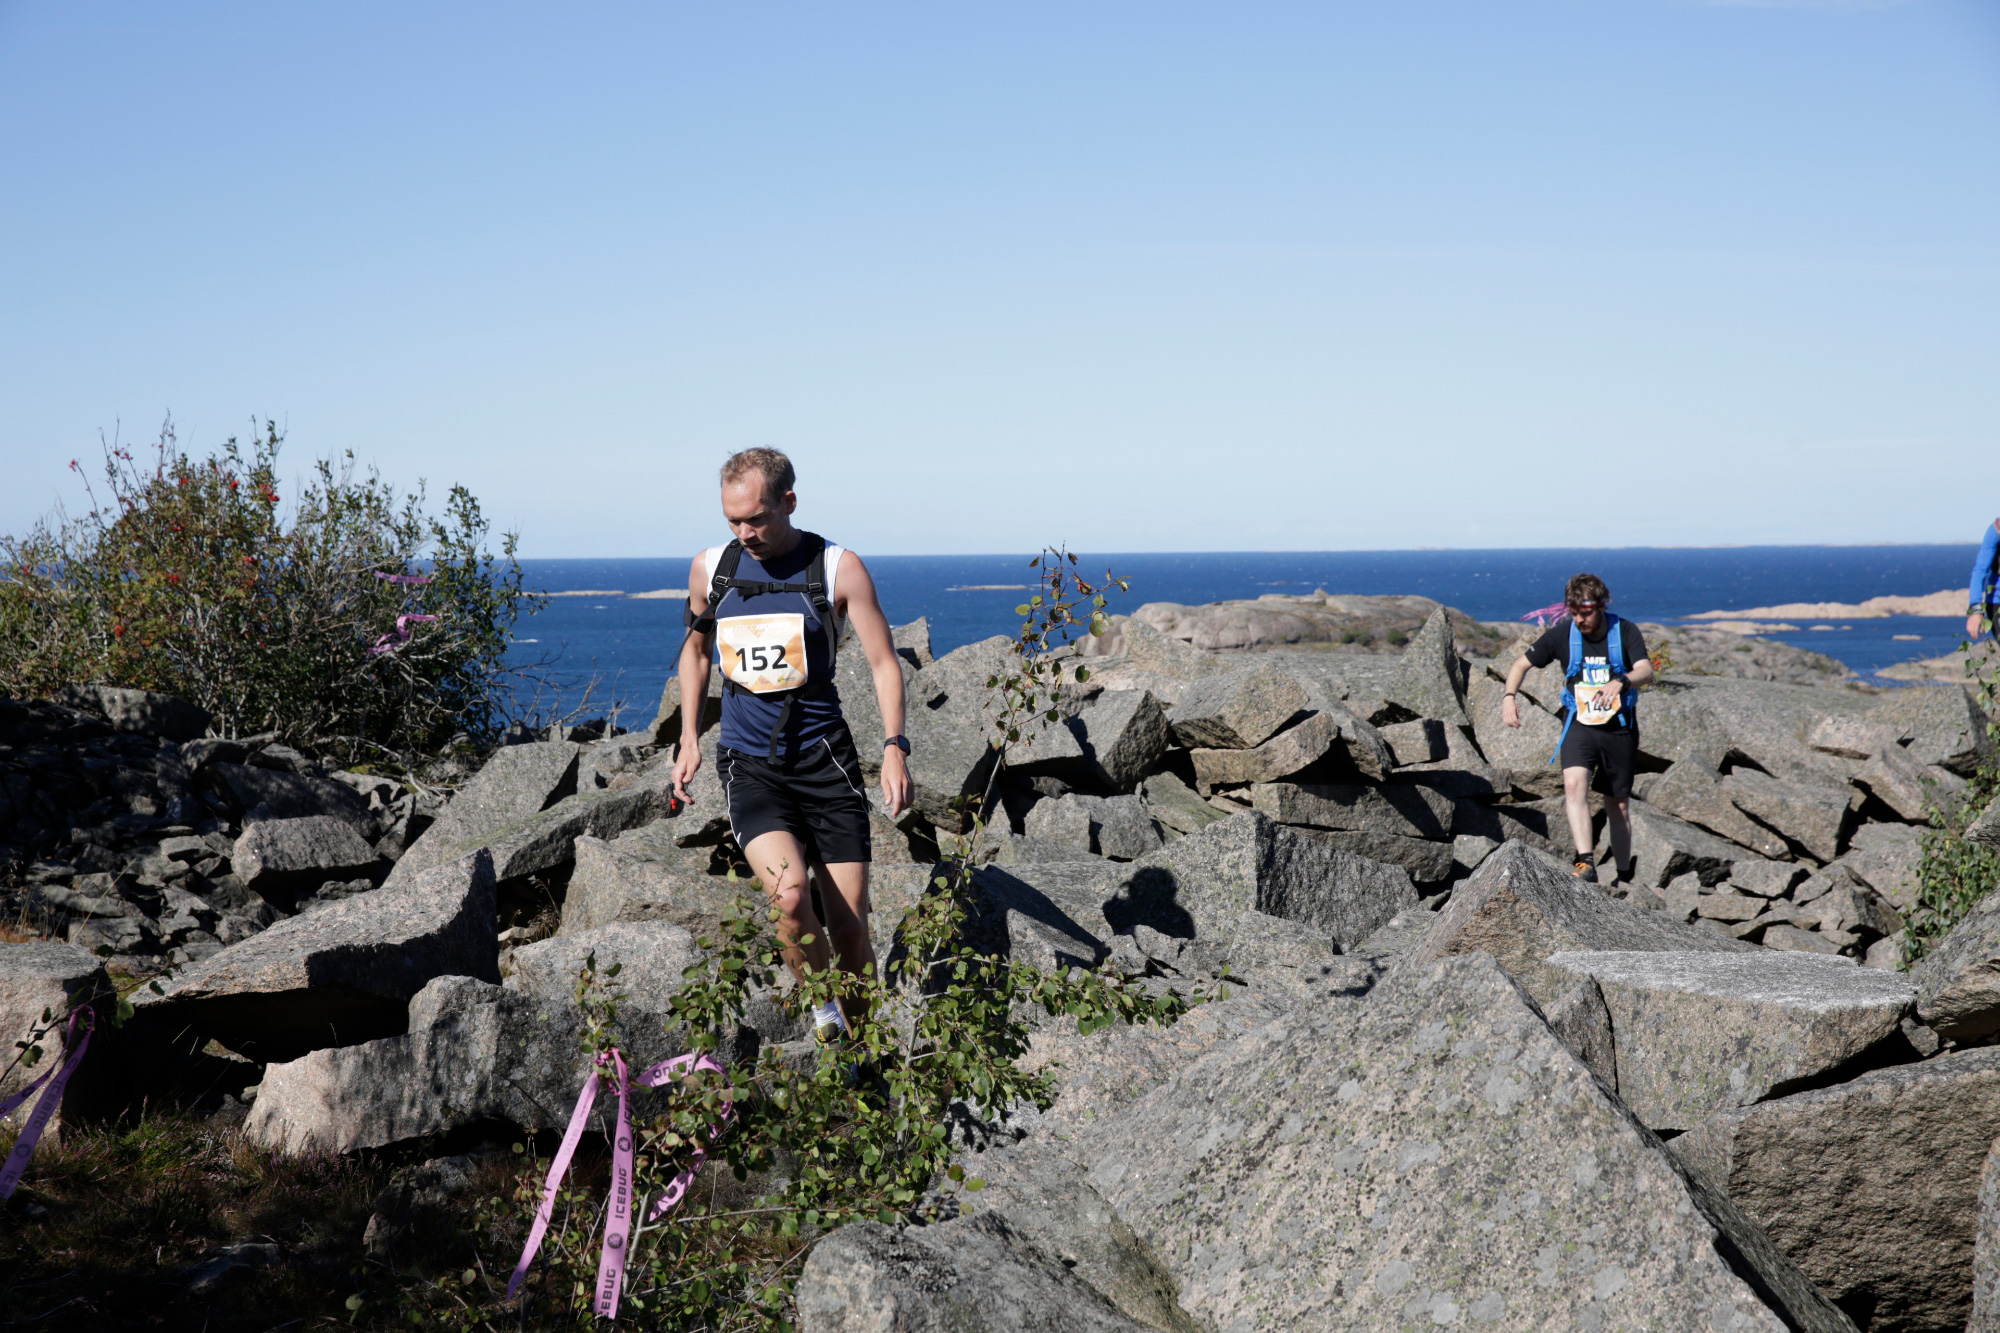 Two runners wending their way through rock with the sea in the background on the Icebug Xperience marathon